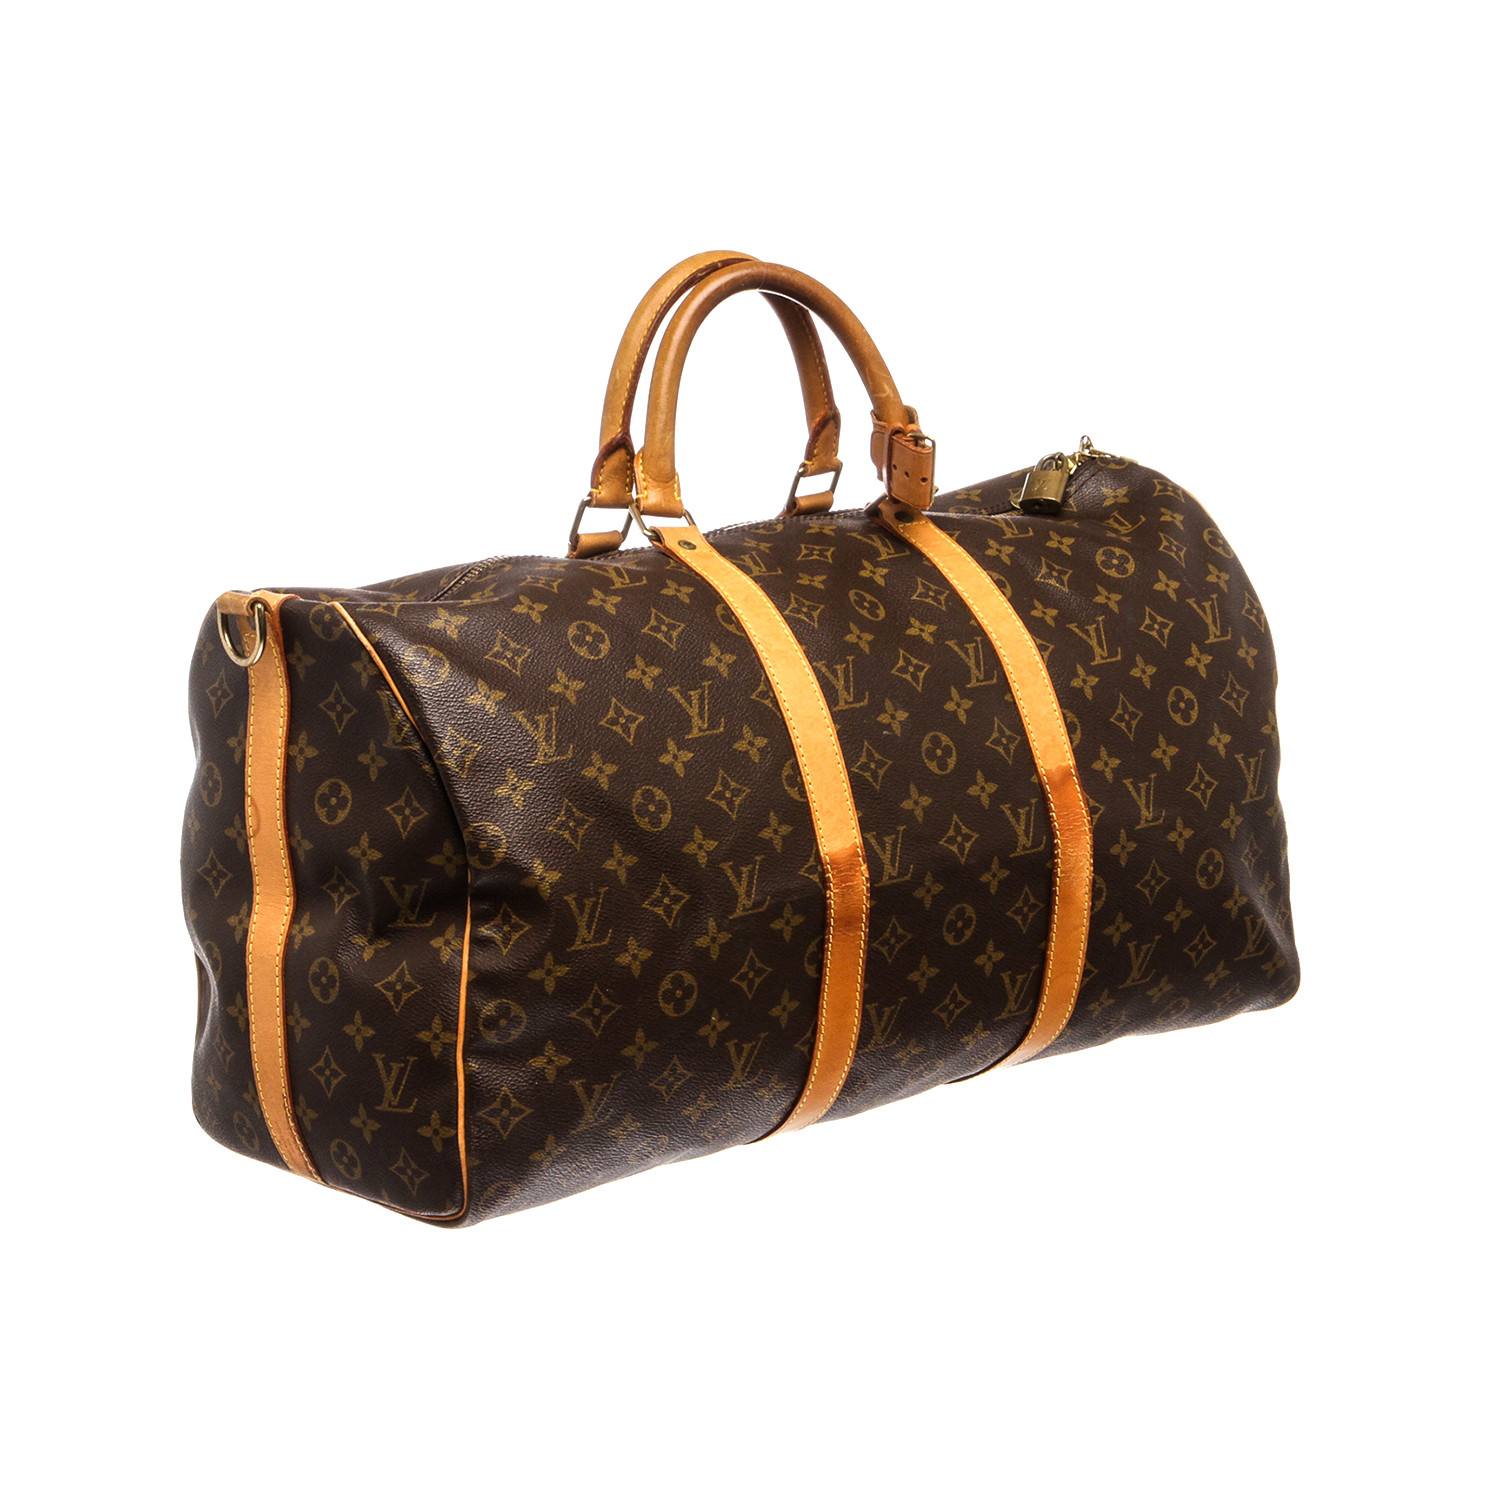 louis vuitton monogram keepall 50 bandouliere duffle th0926 pre owned louis vuitton. Black Bedroom Furniture Sets. Home Design Ideas